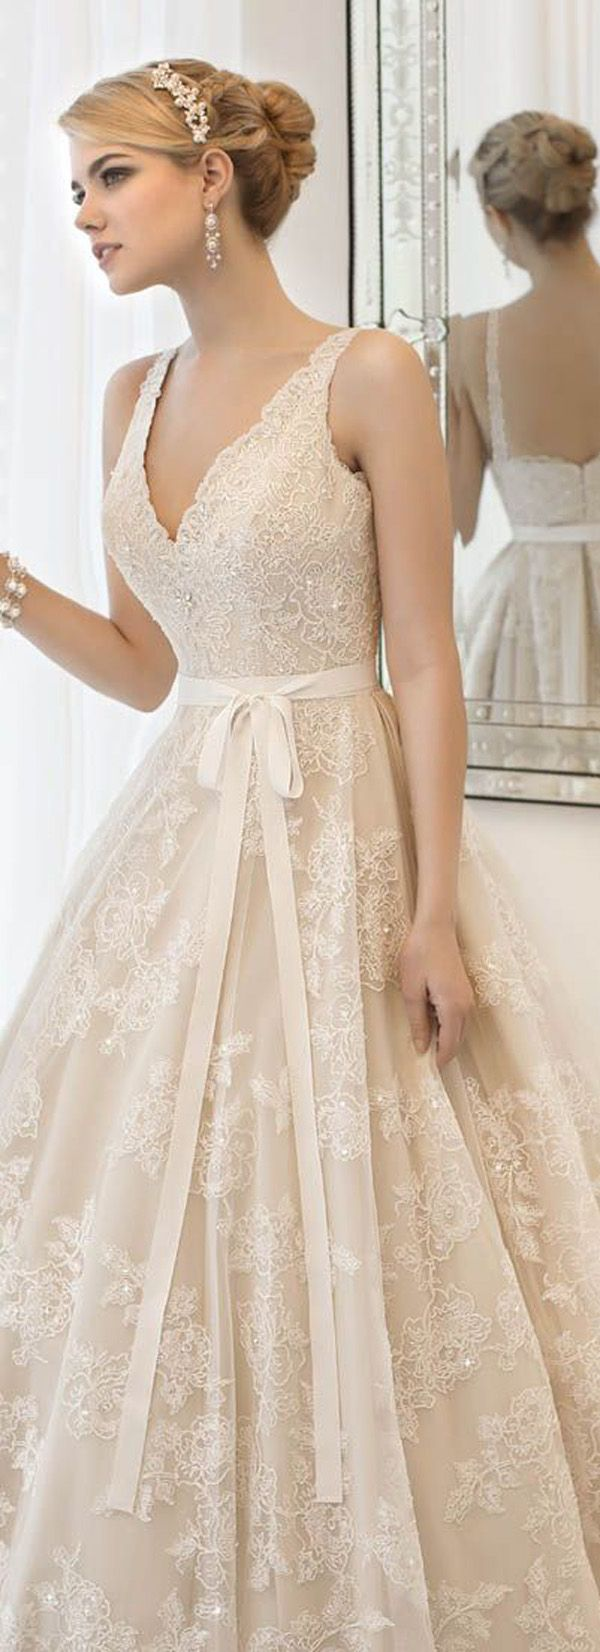 vintage lace wedding dresses with ribbon